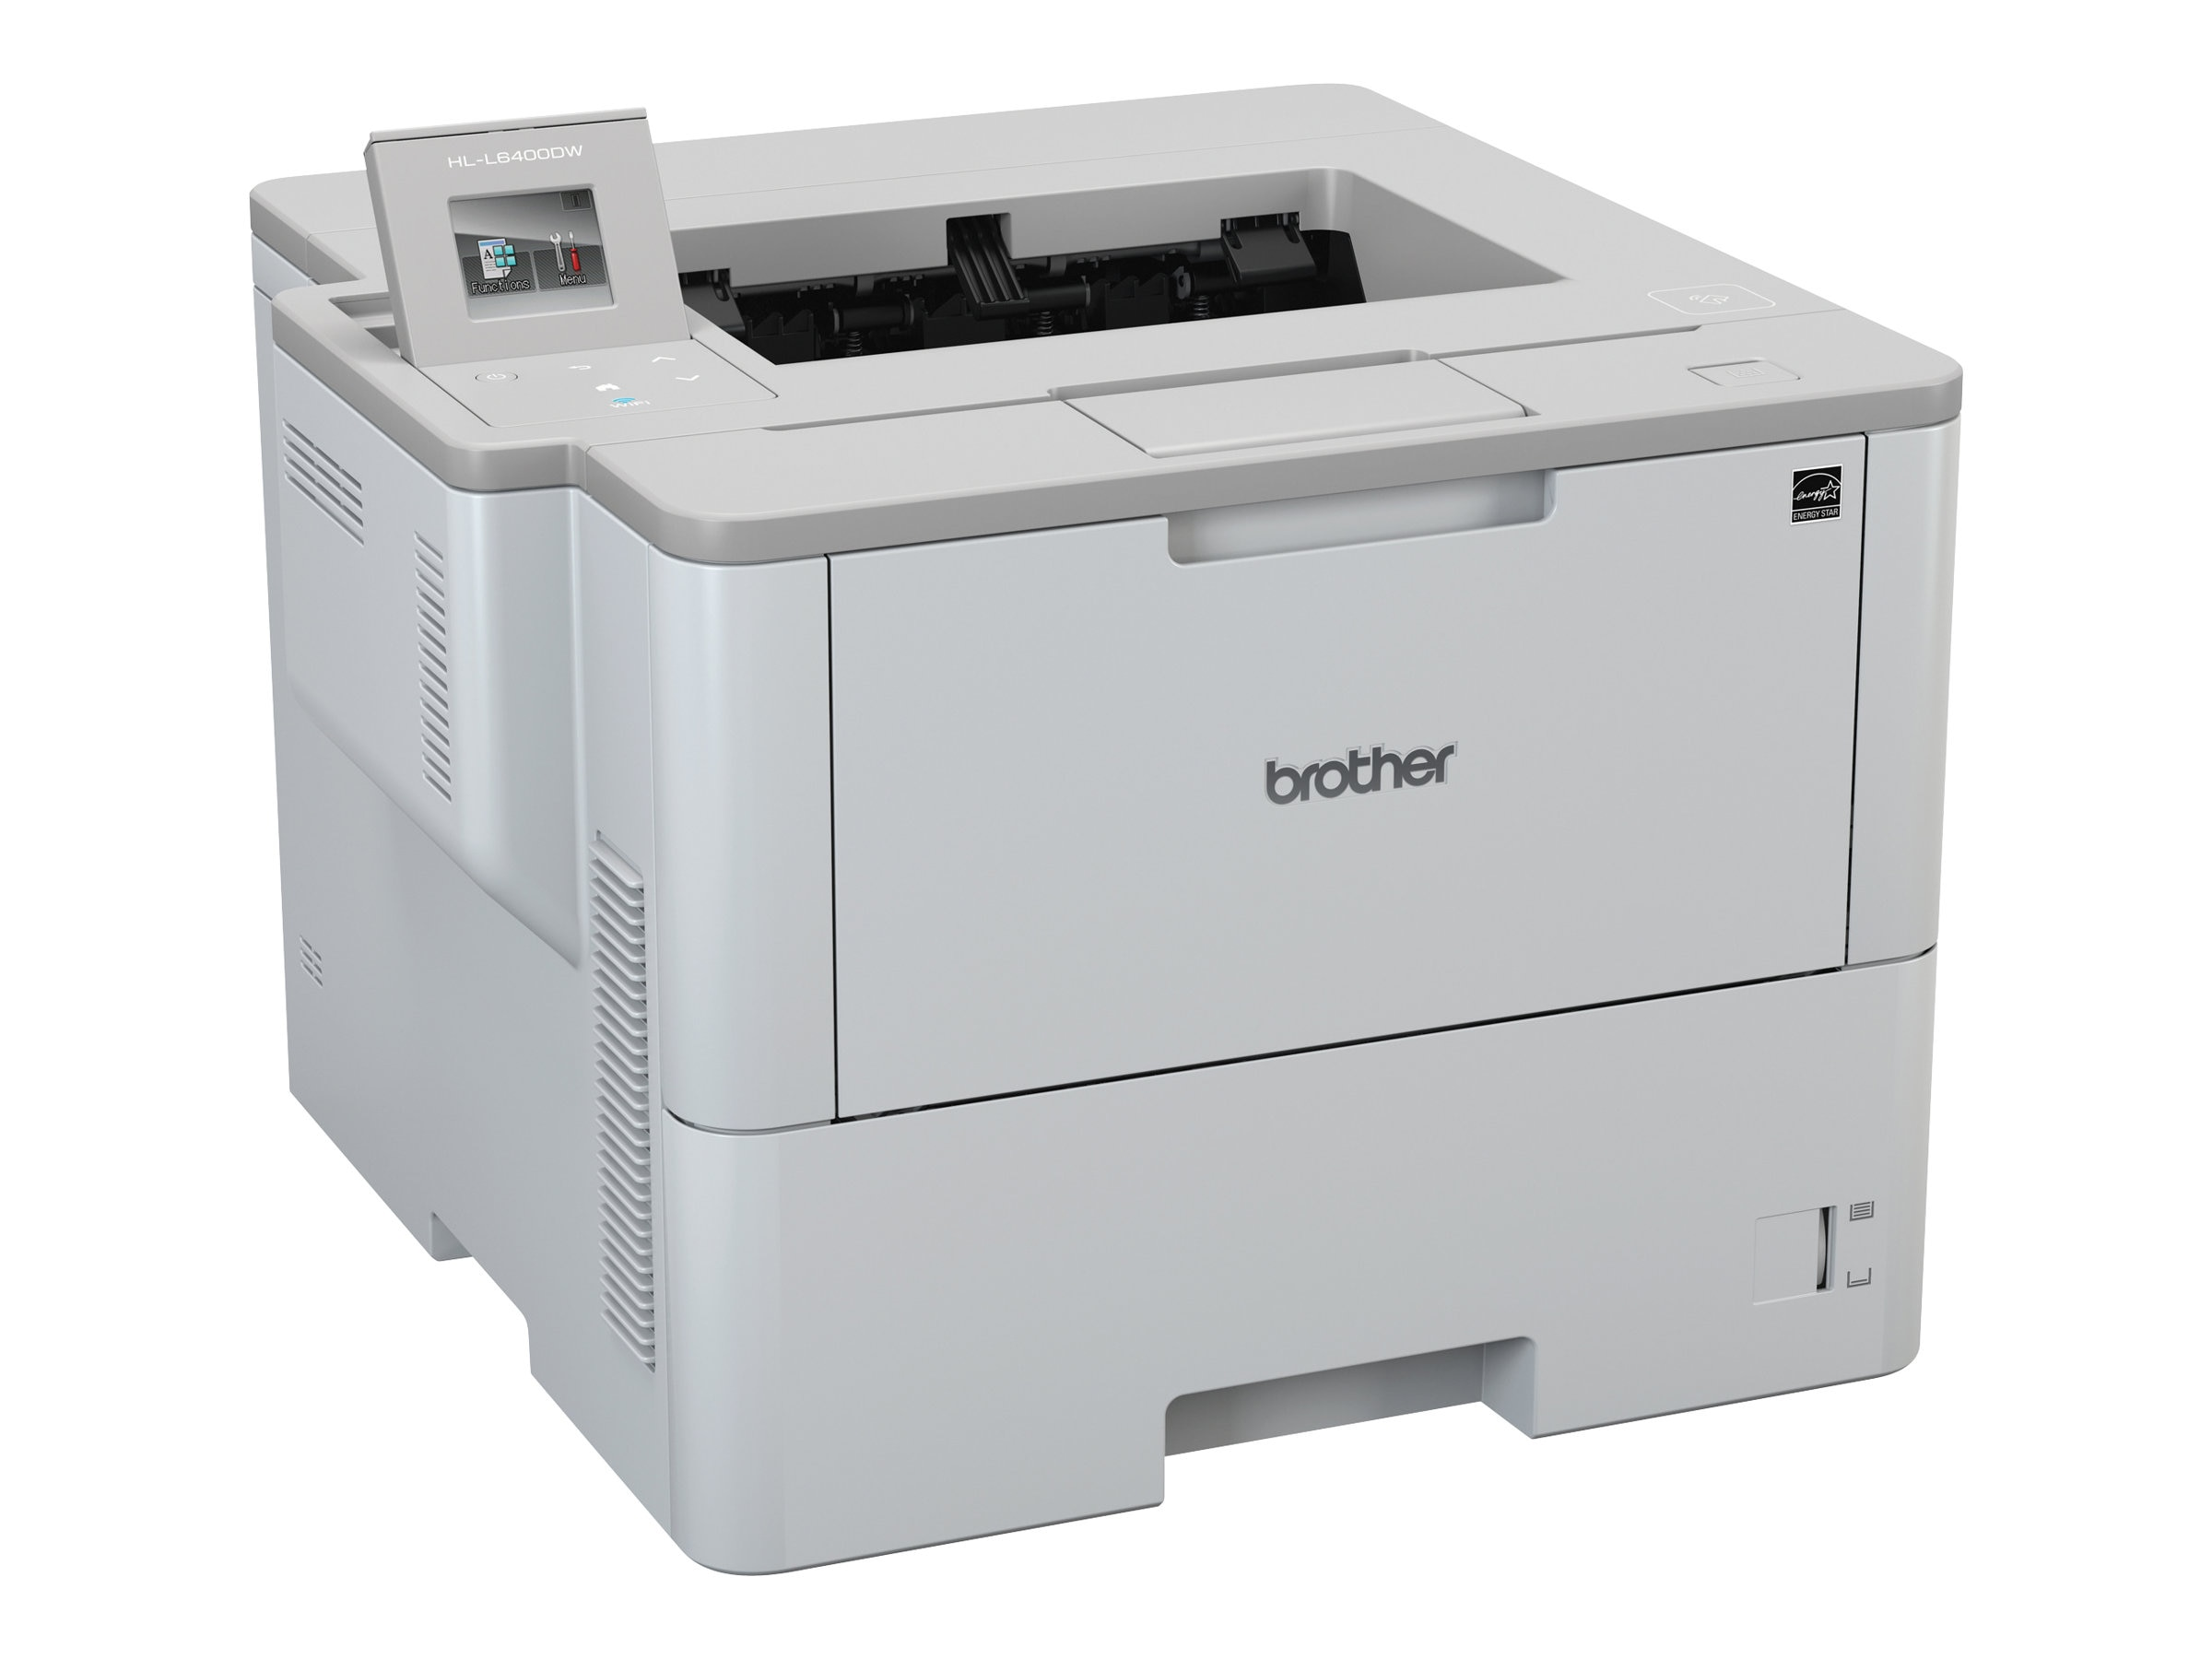 Brother HL-L6400DW Image 3